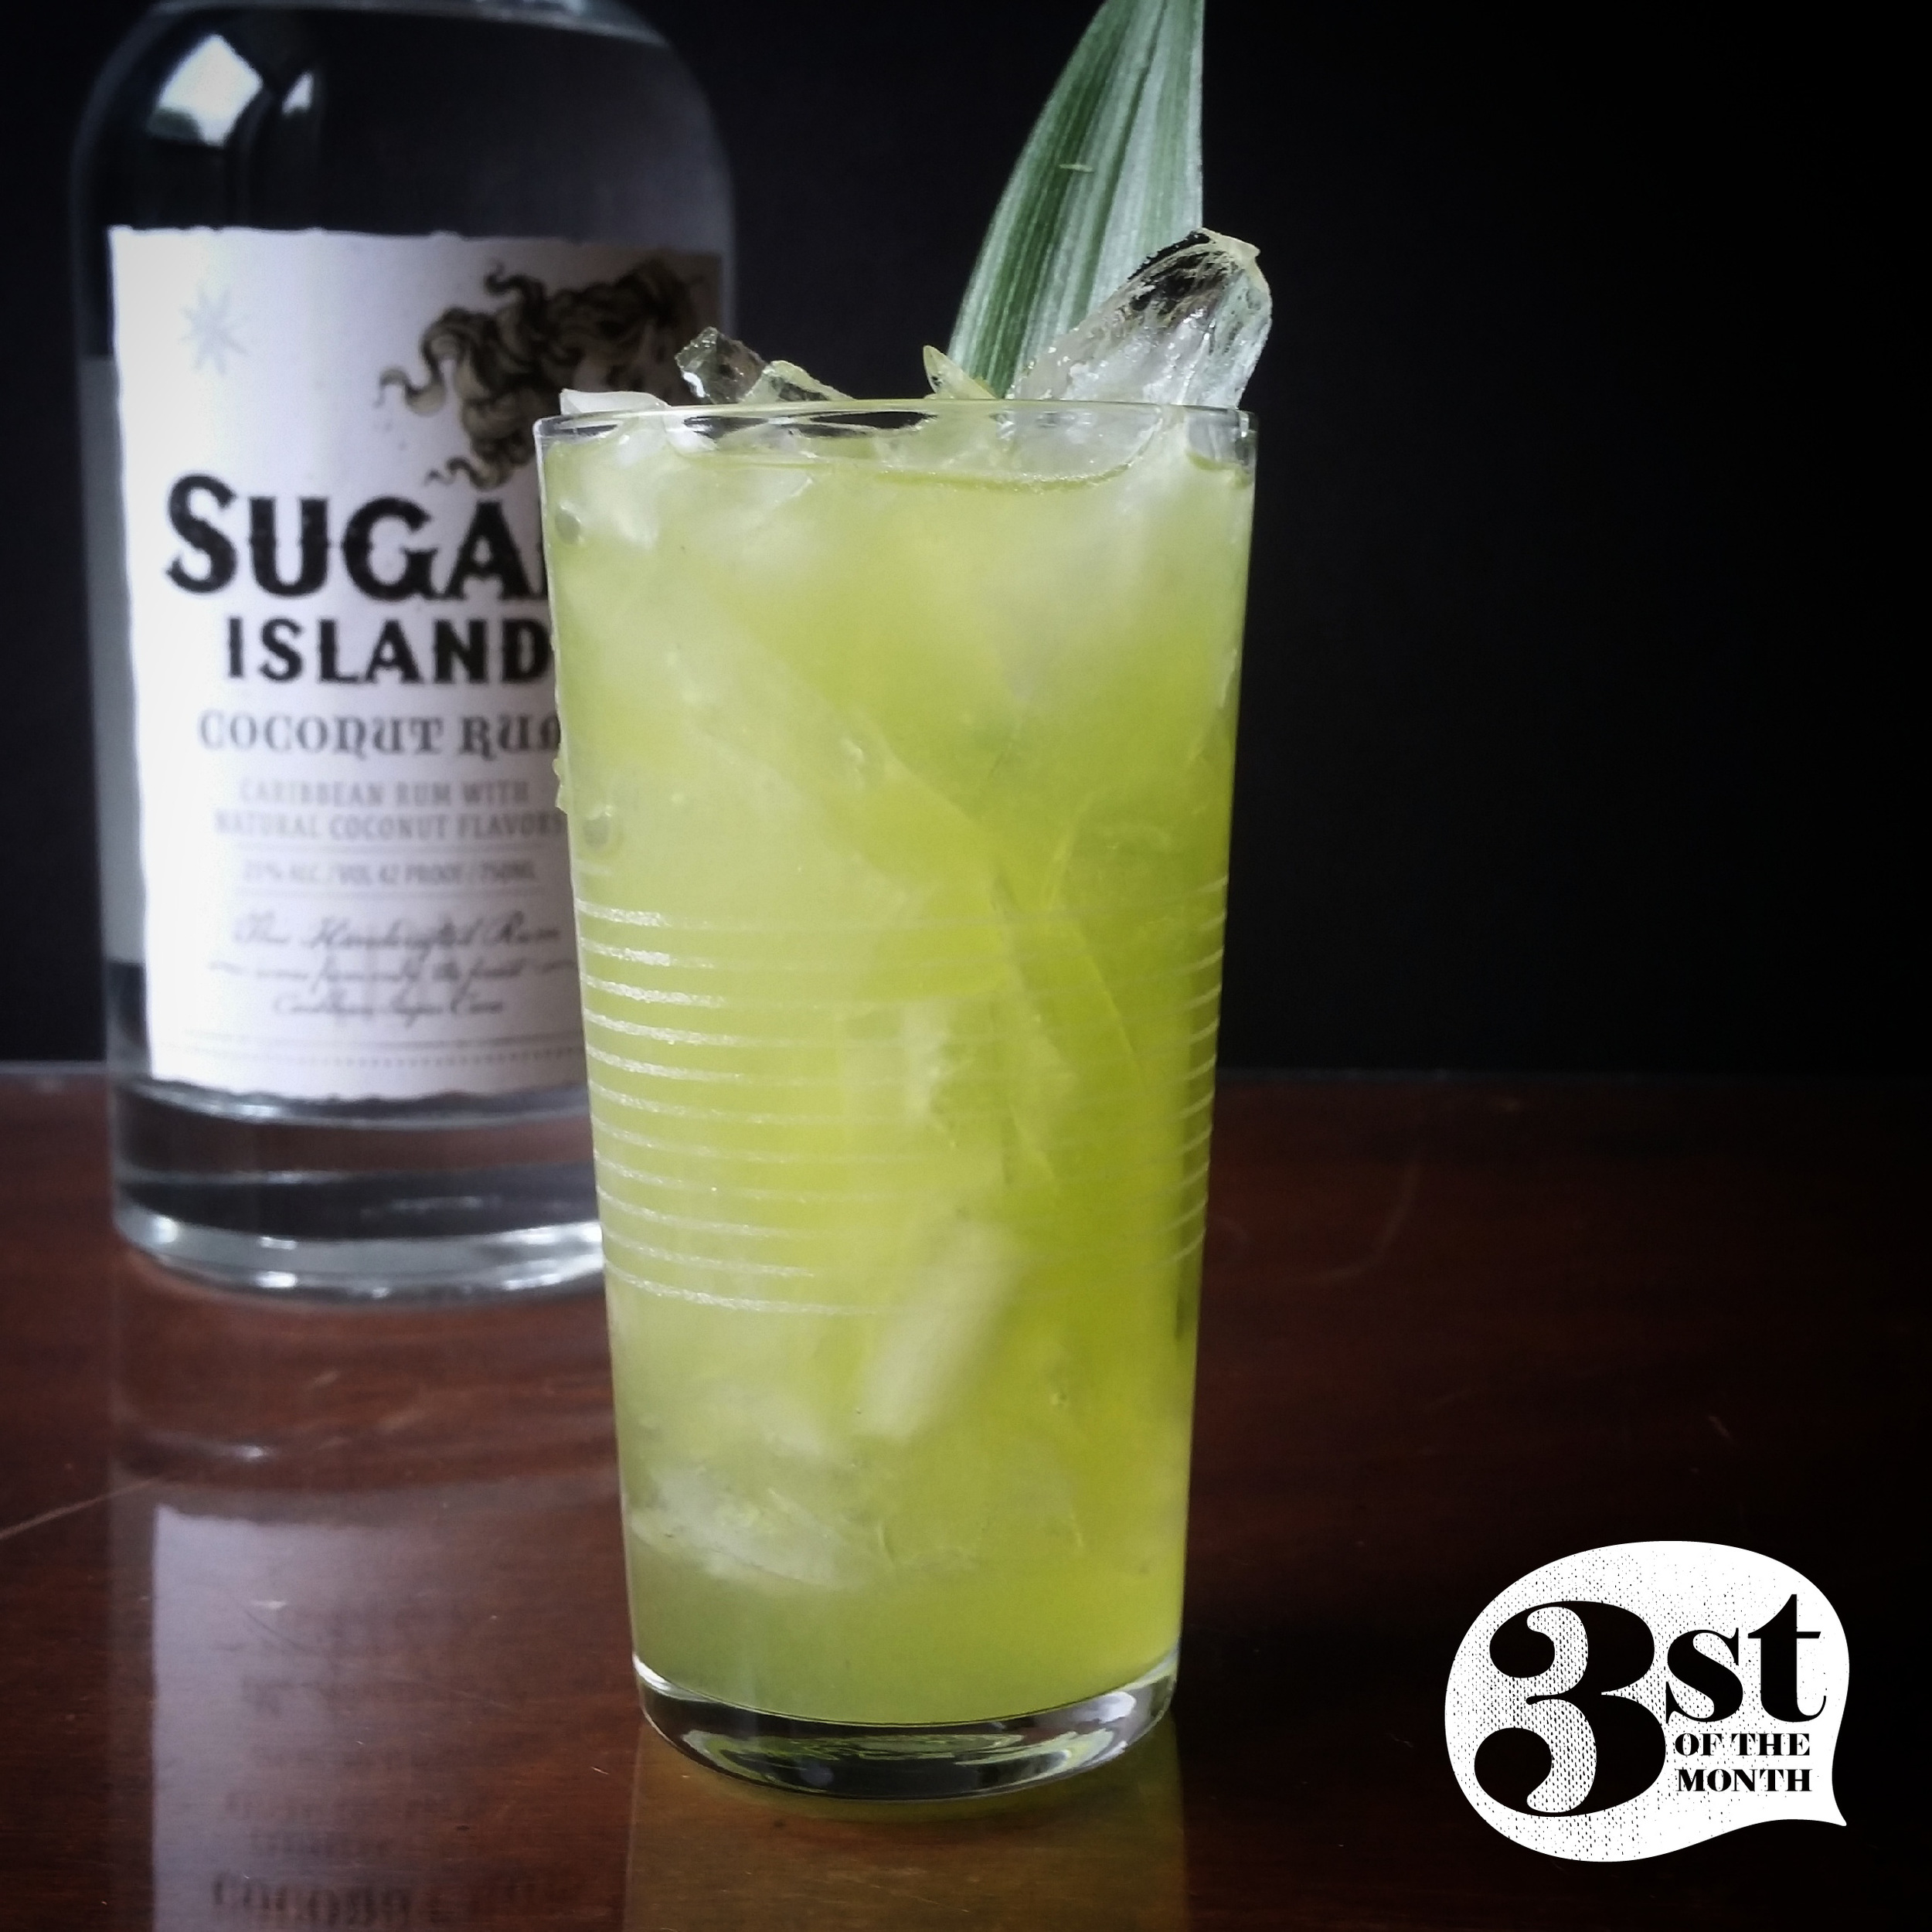 Green Coconut Cocktail from 3st of the Month